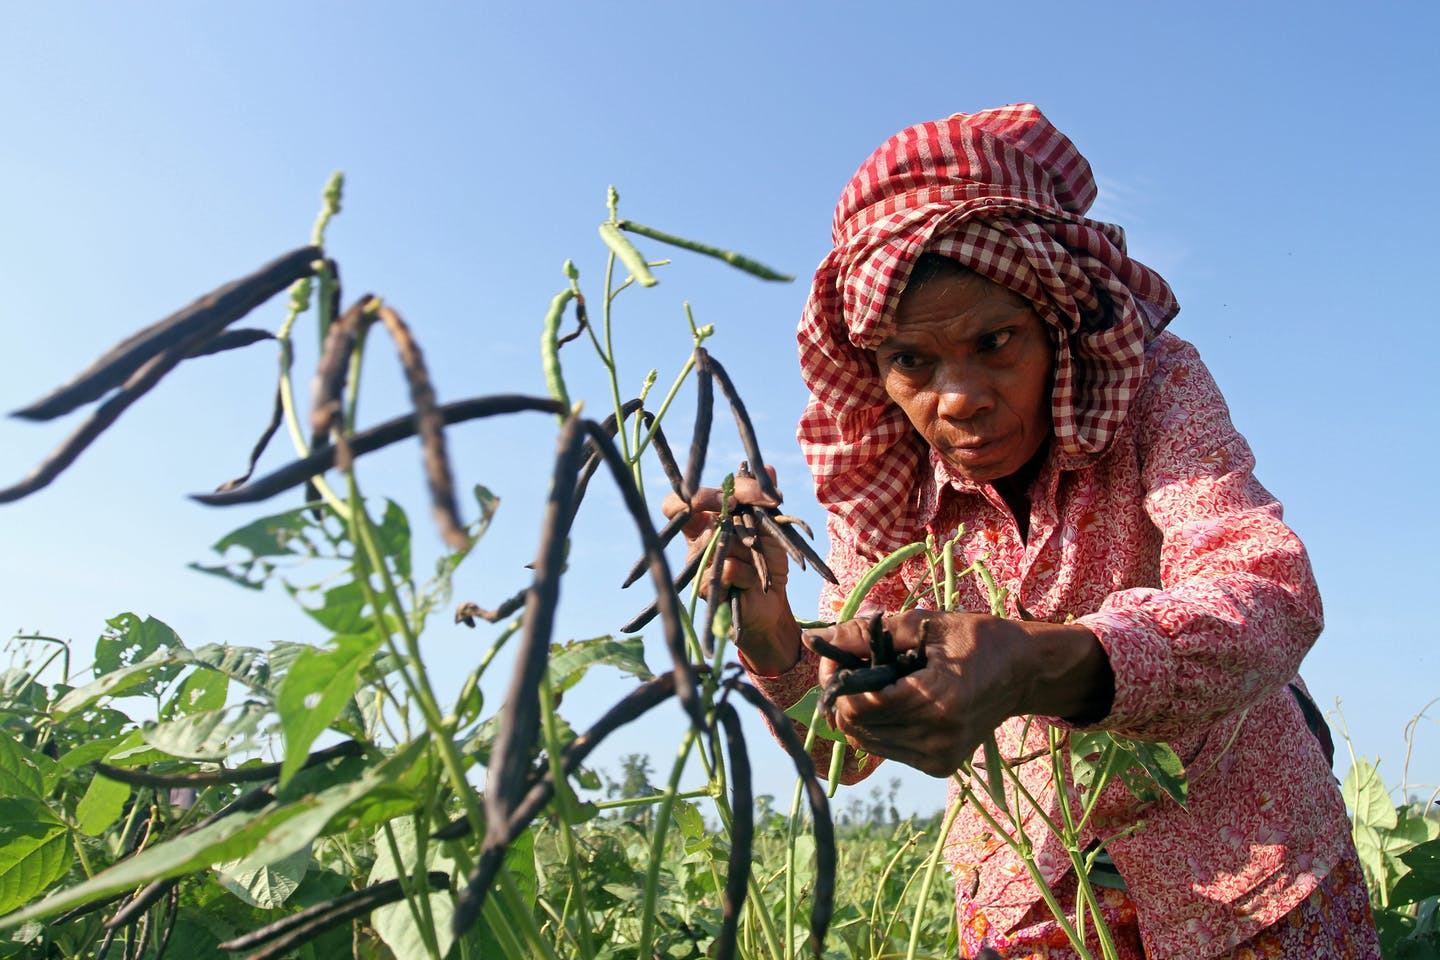 A woman harvesting mung beans in Cambodia